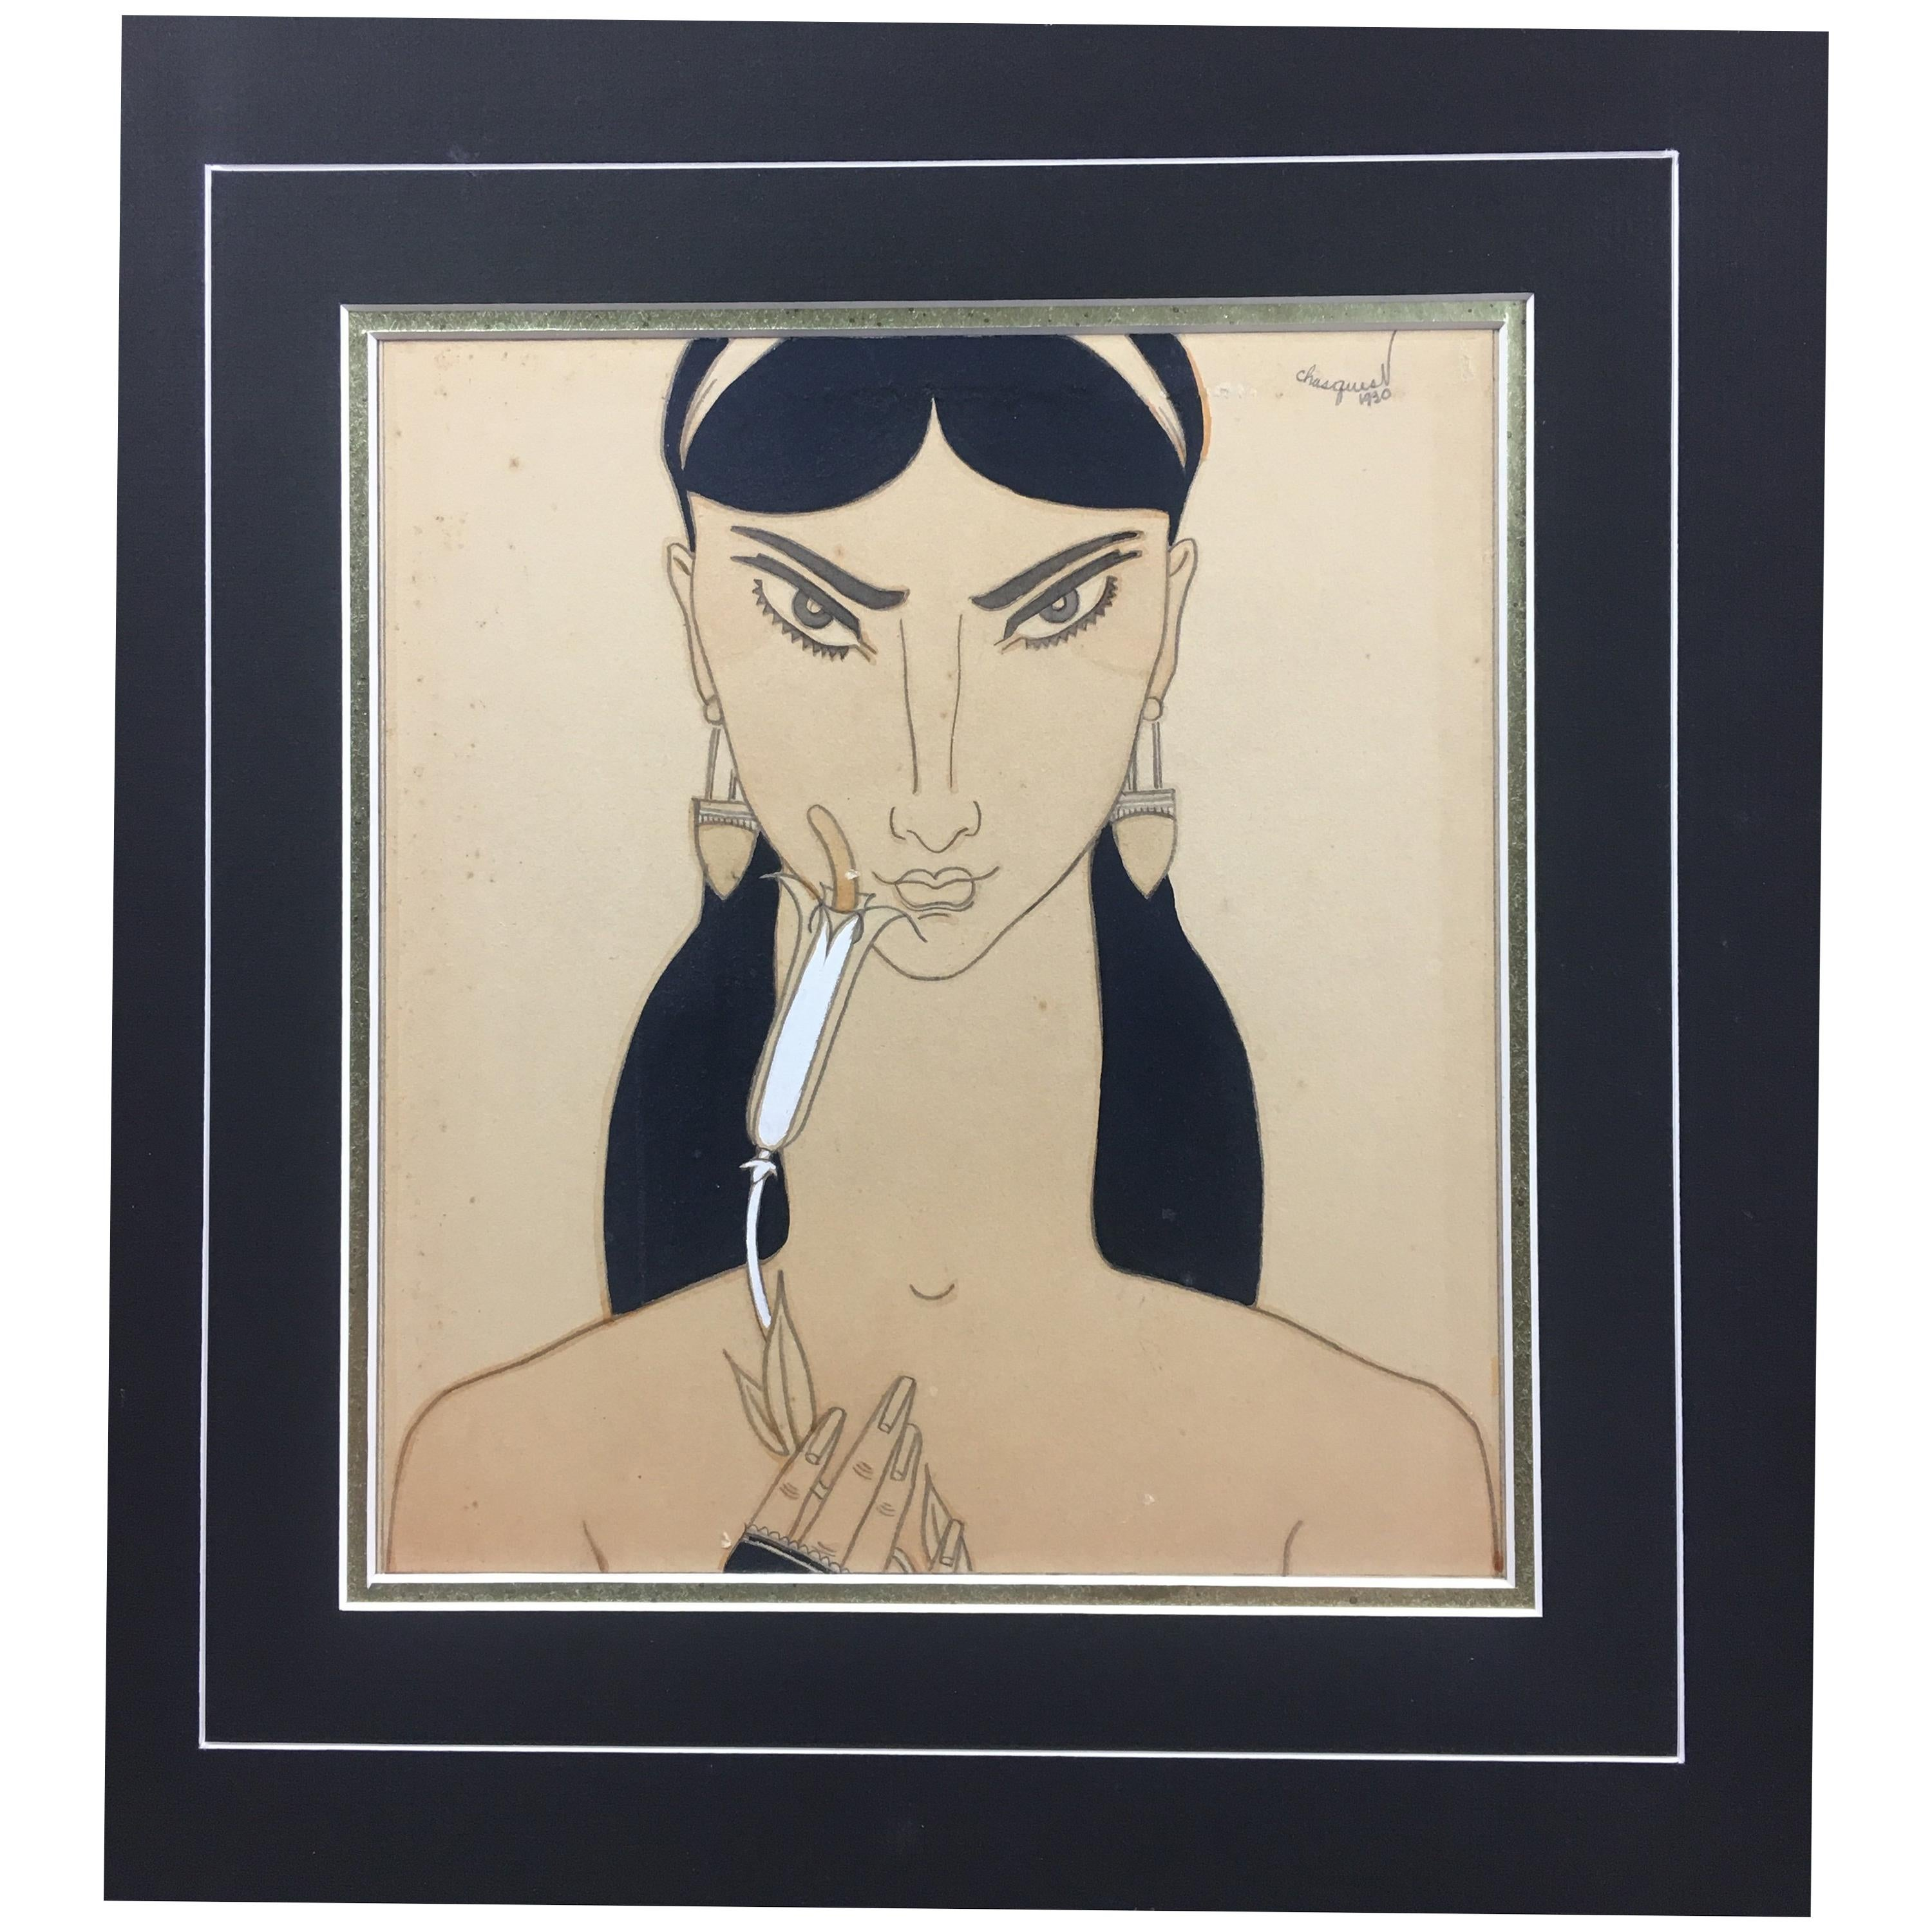 French Art Deco Painting Woman Holding a Flower, Signed Chasquest Dated 1930